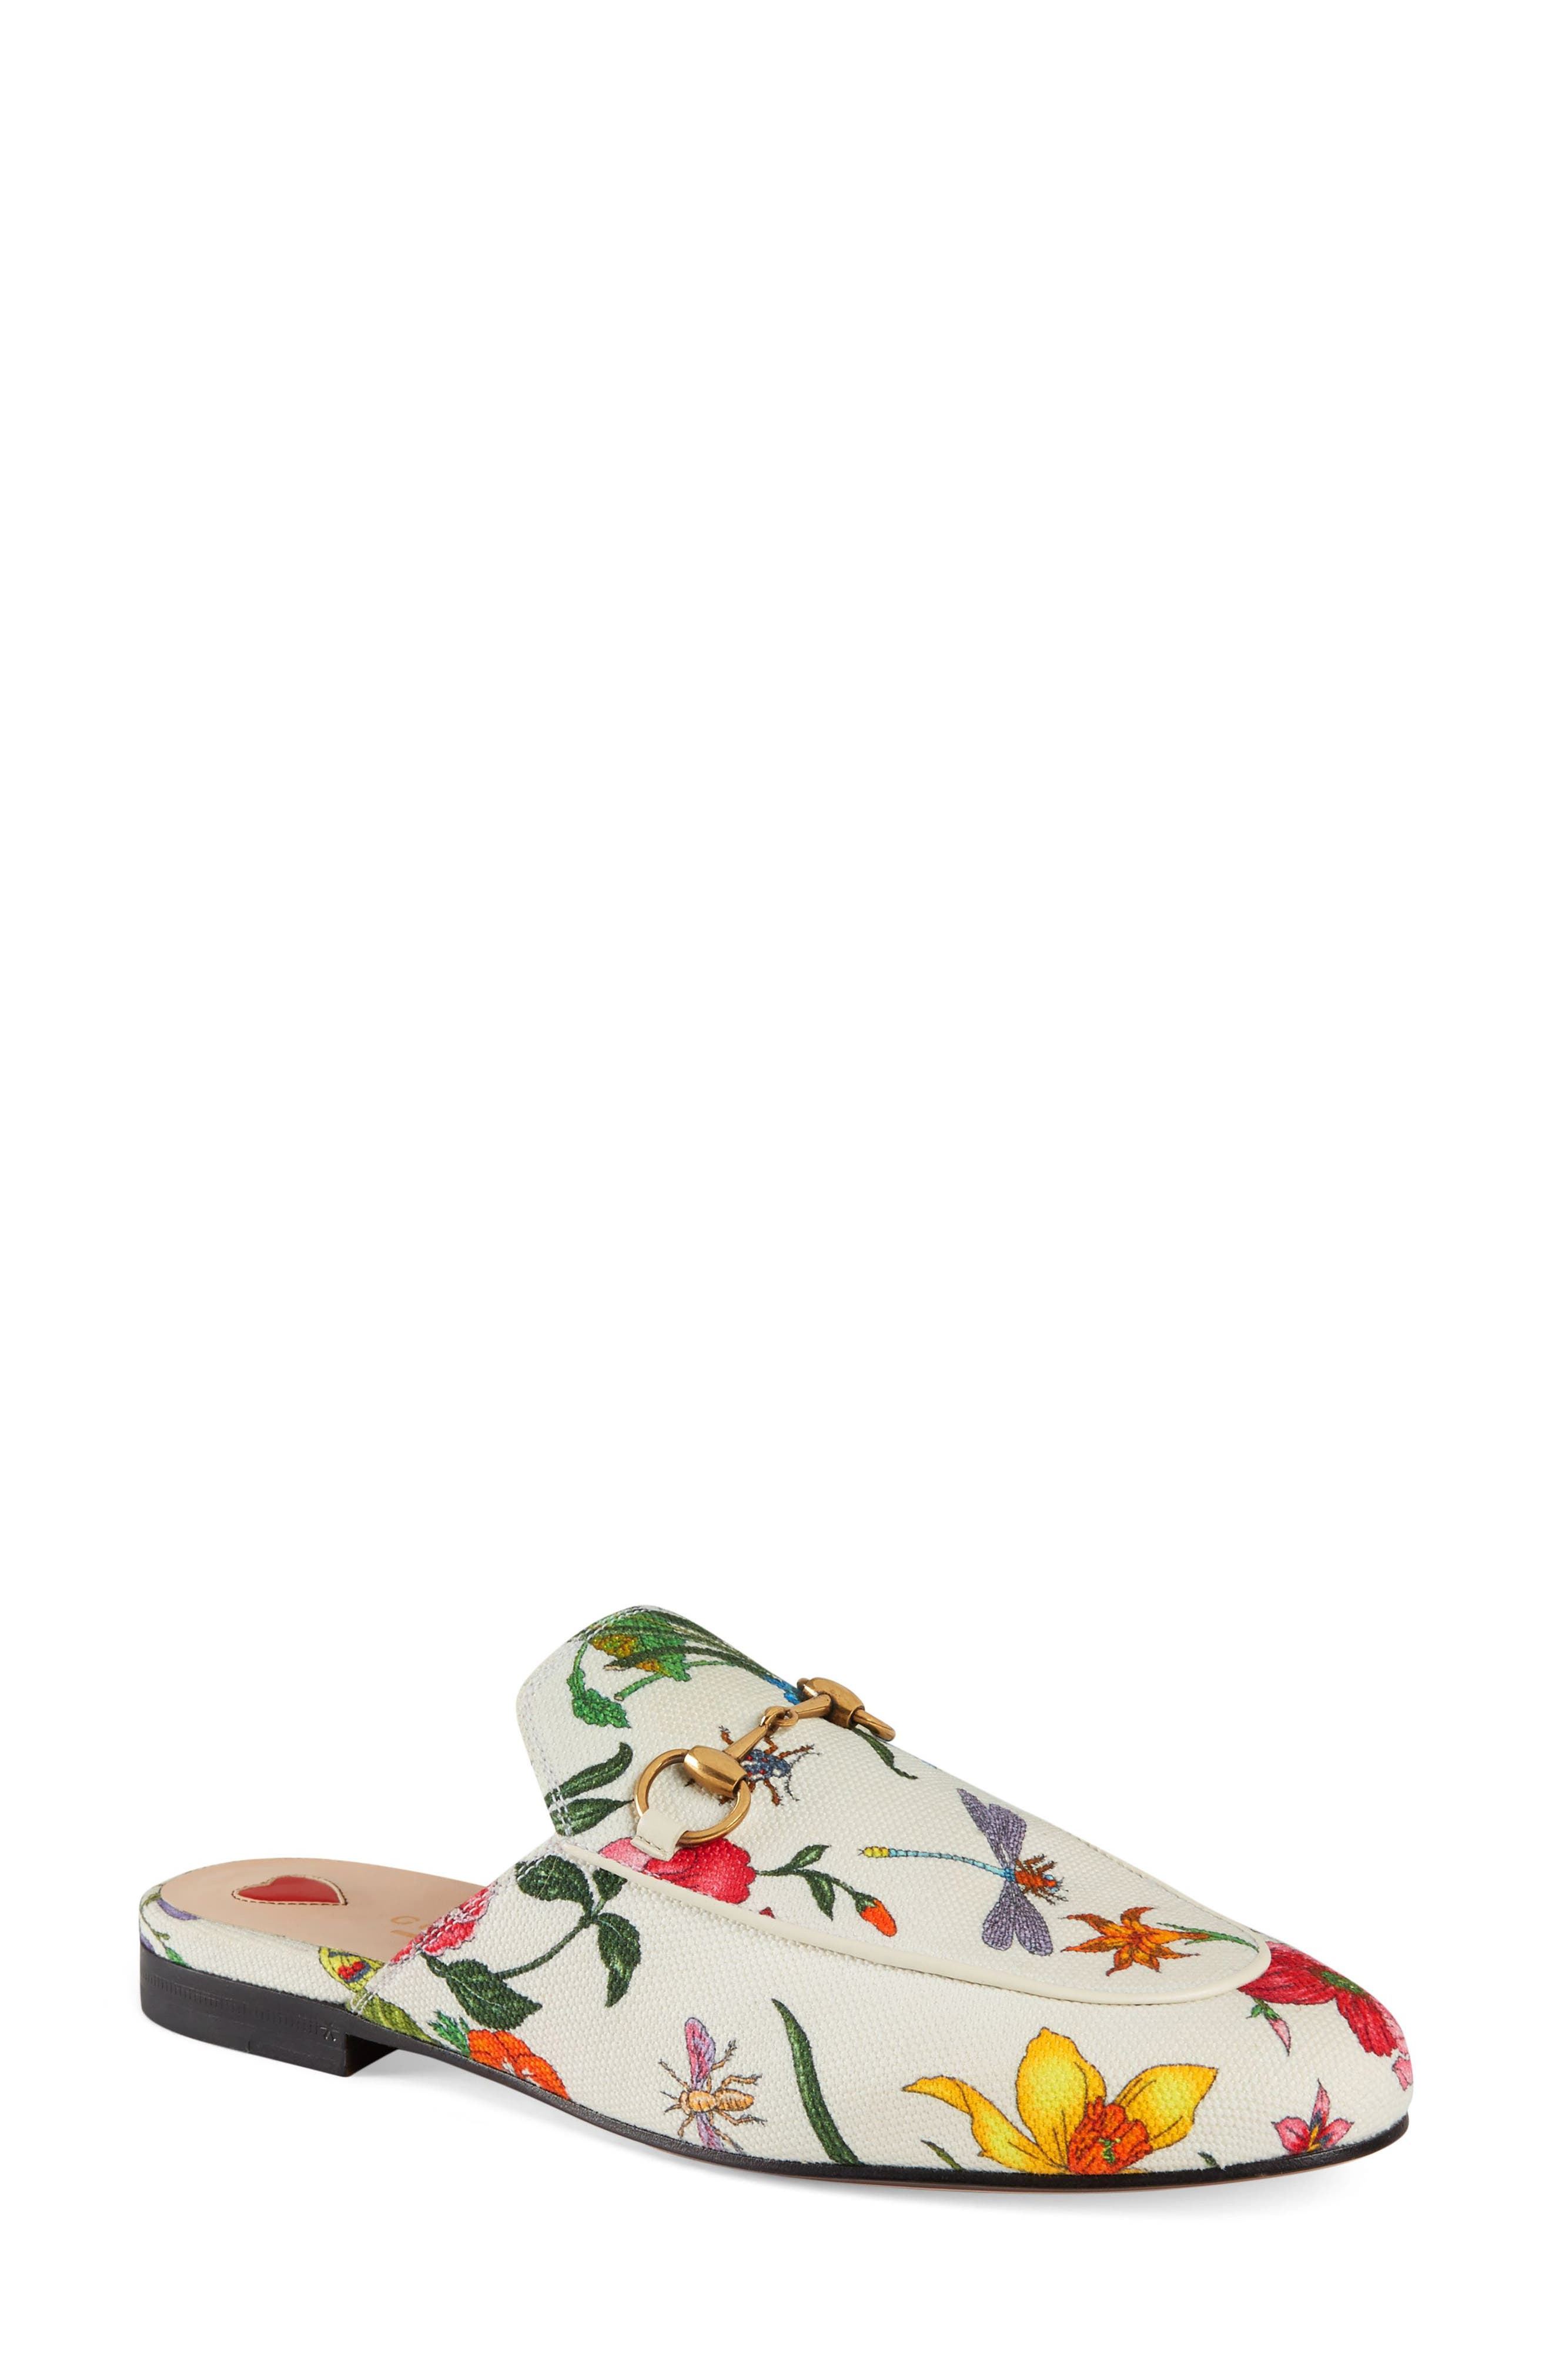 GUCCI Princetown Loafer Mule, Main, color, WHITE FLORAL